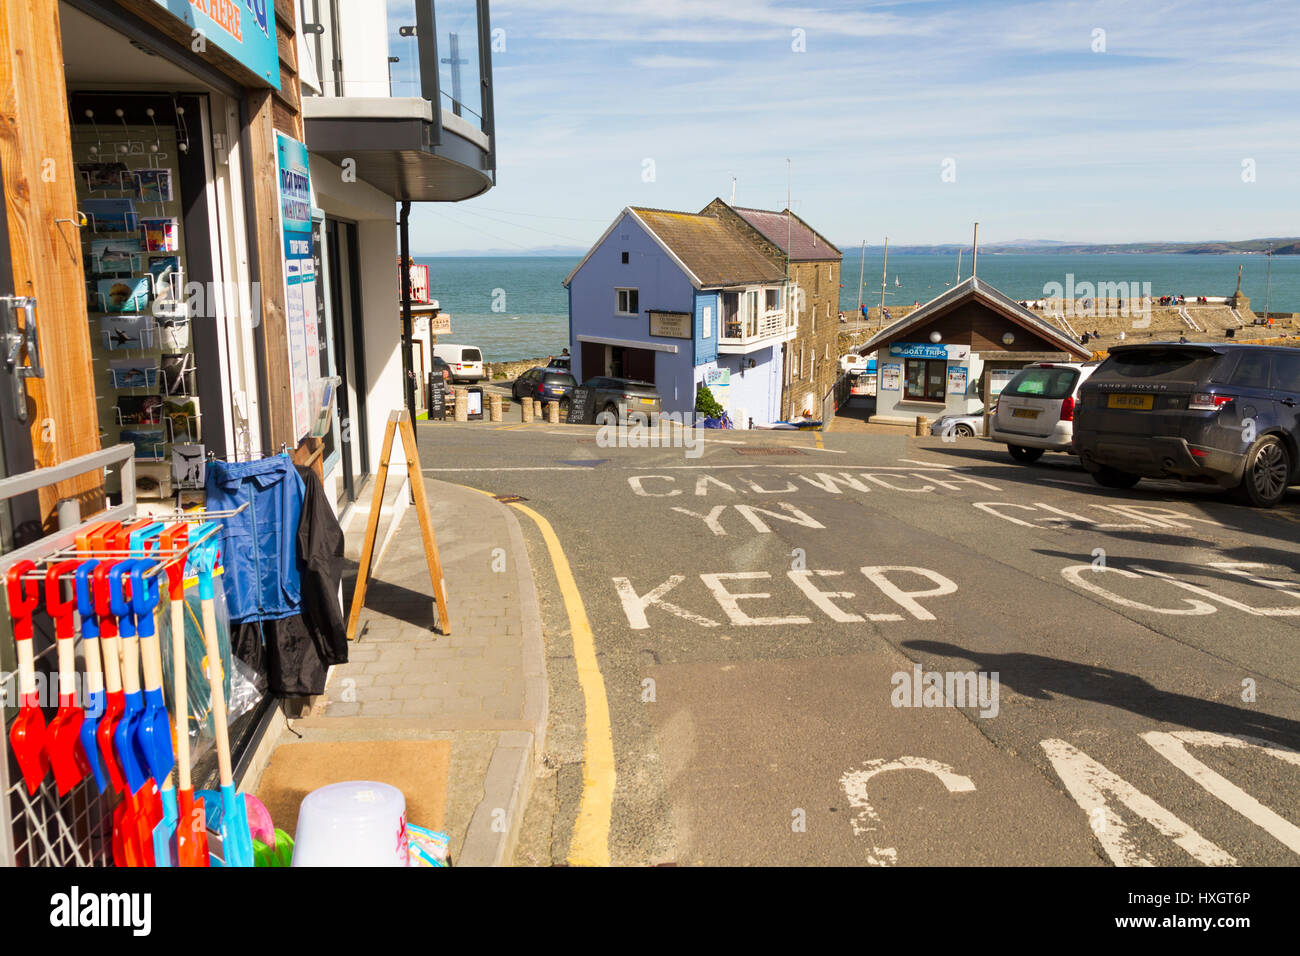 Tourist shops along the seafront in the small coastal town of New Quay Wales - Stock Image